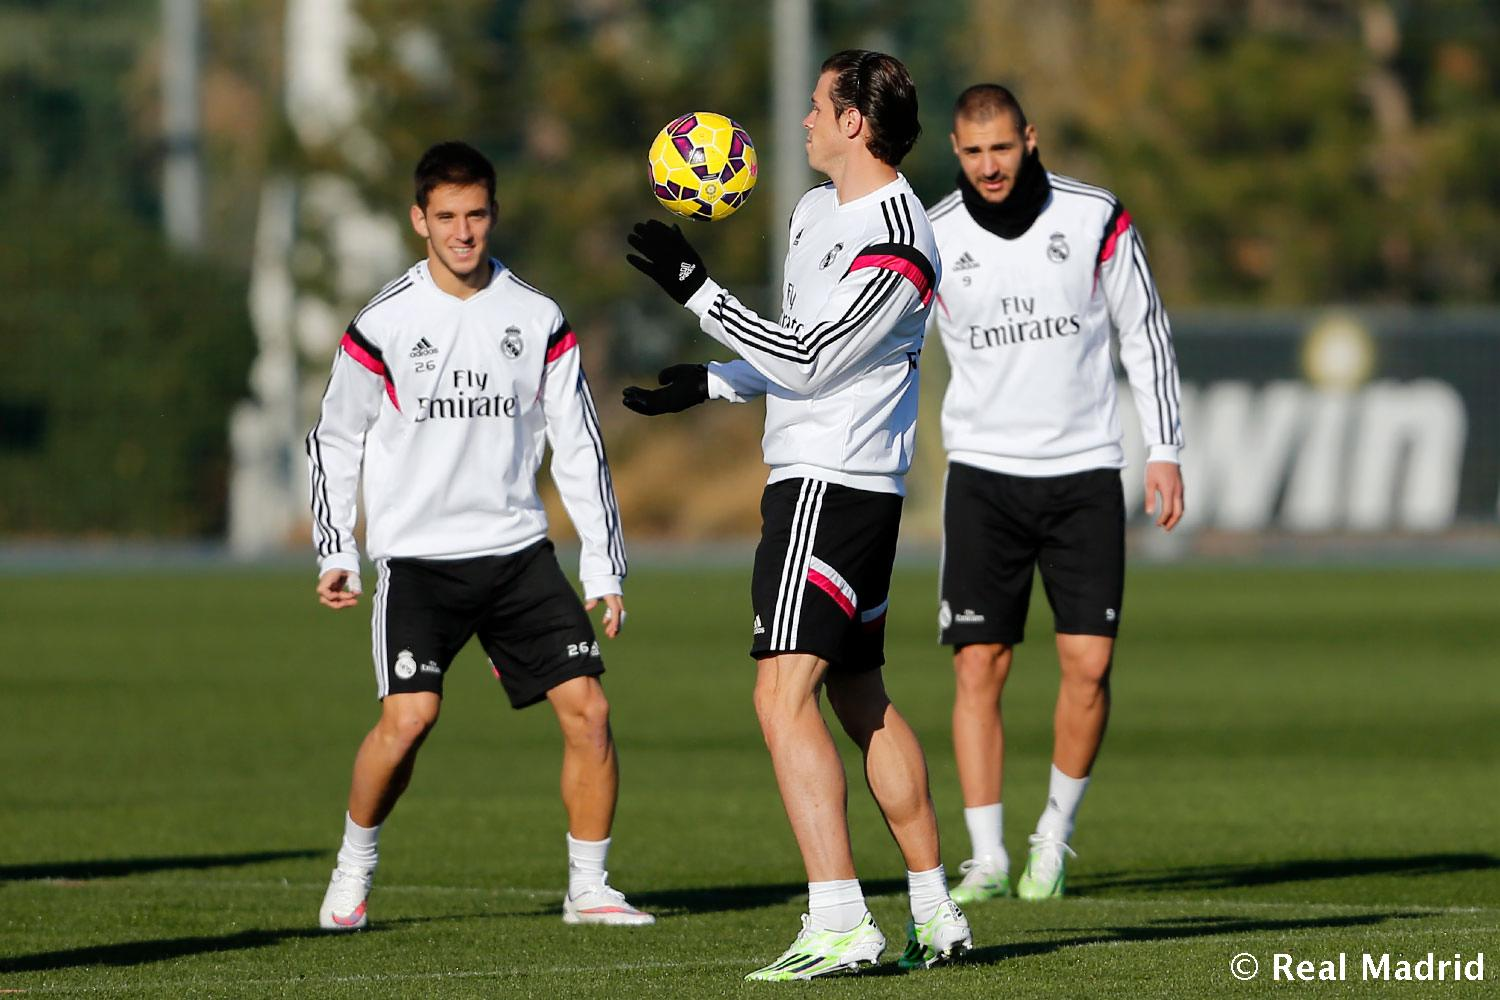 Real Madrid - Entrenamiento del Real Madrid - 05-12-2014